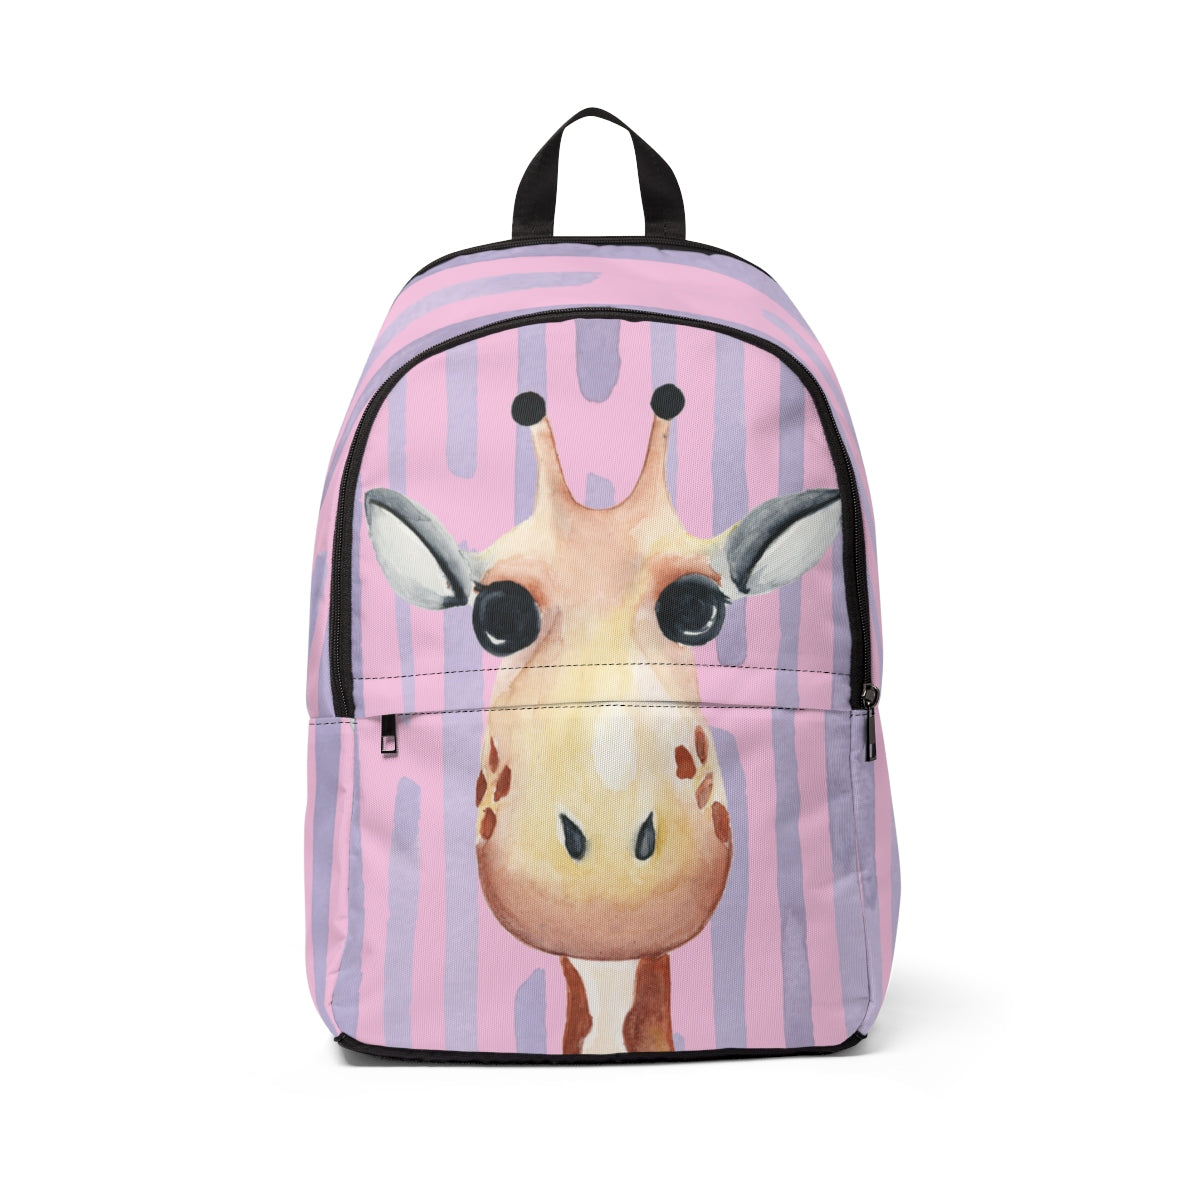 Gelato Giraffe Backpack